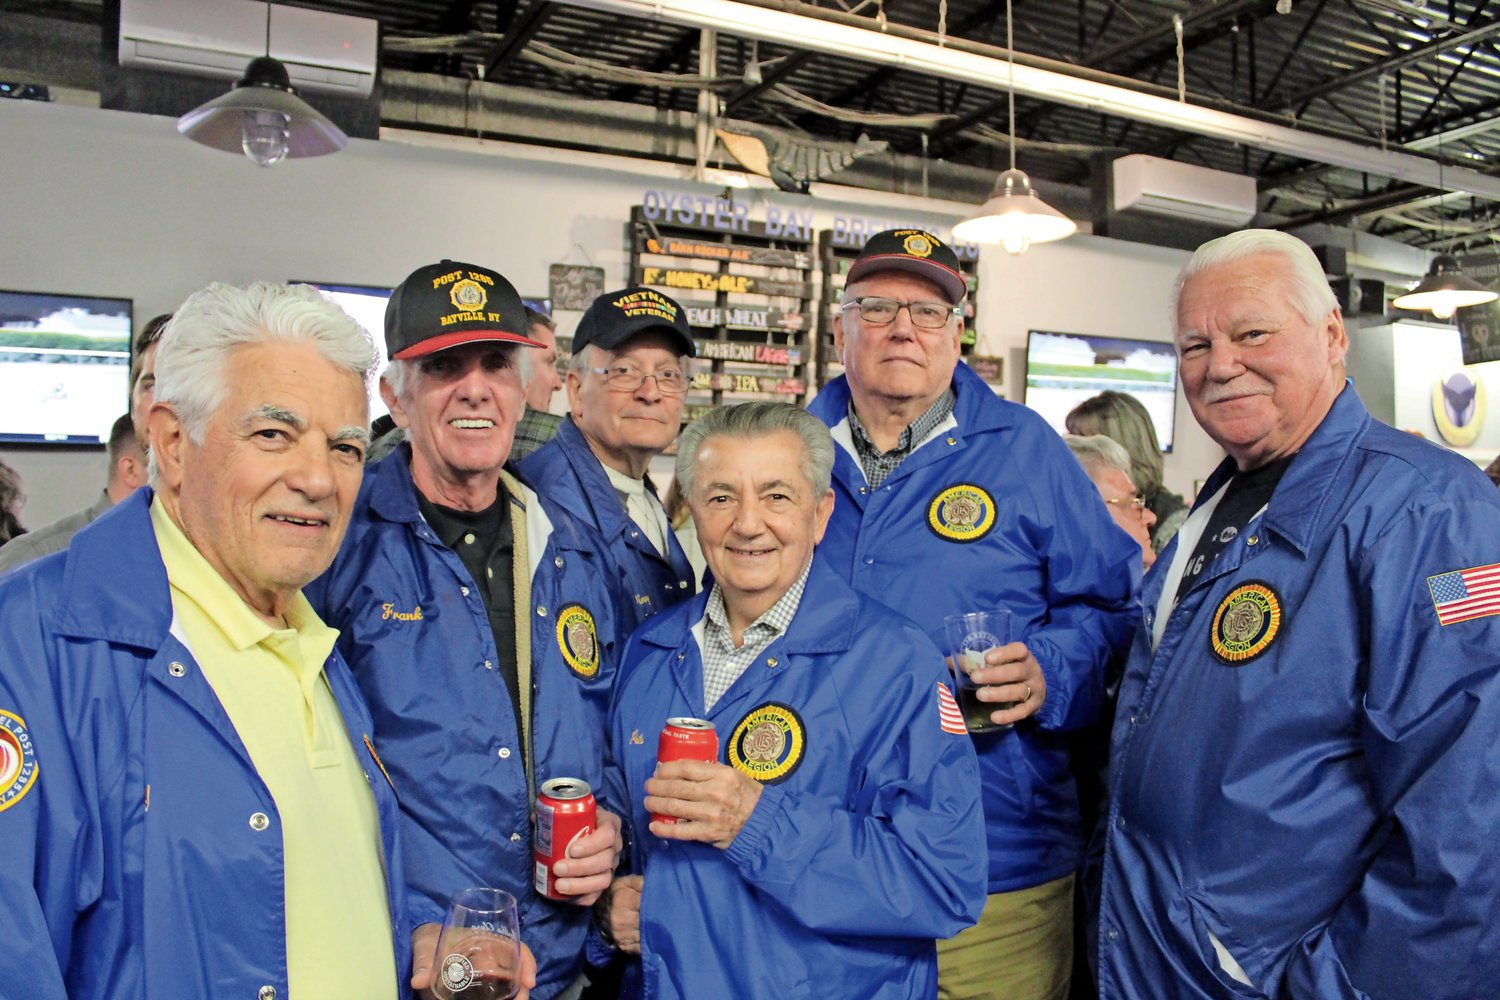 Members of the Robert H. Spittel American Legion Post 1285, in Bayville: Tony Bruno, left, Frank Herlihy, Vinnie Libertini, Pete Carbone, Fred Uhl and John Schaefer attended the fundraiser to honor Cpl. Robert Hendriks.